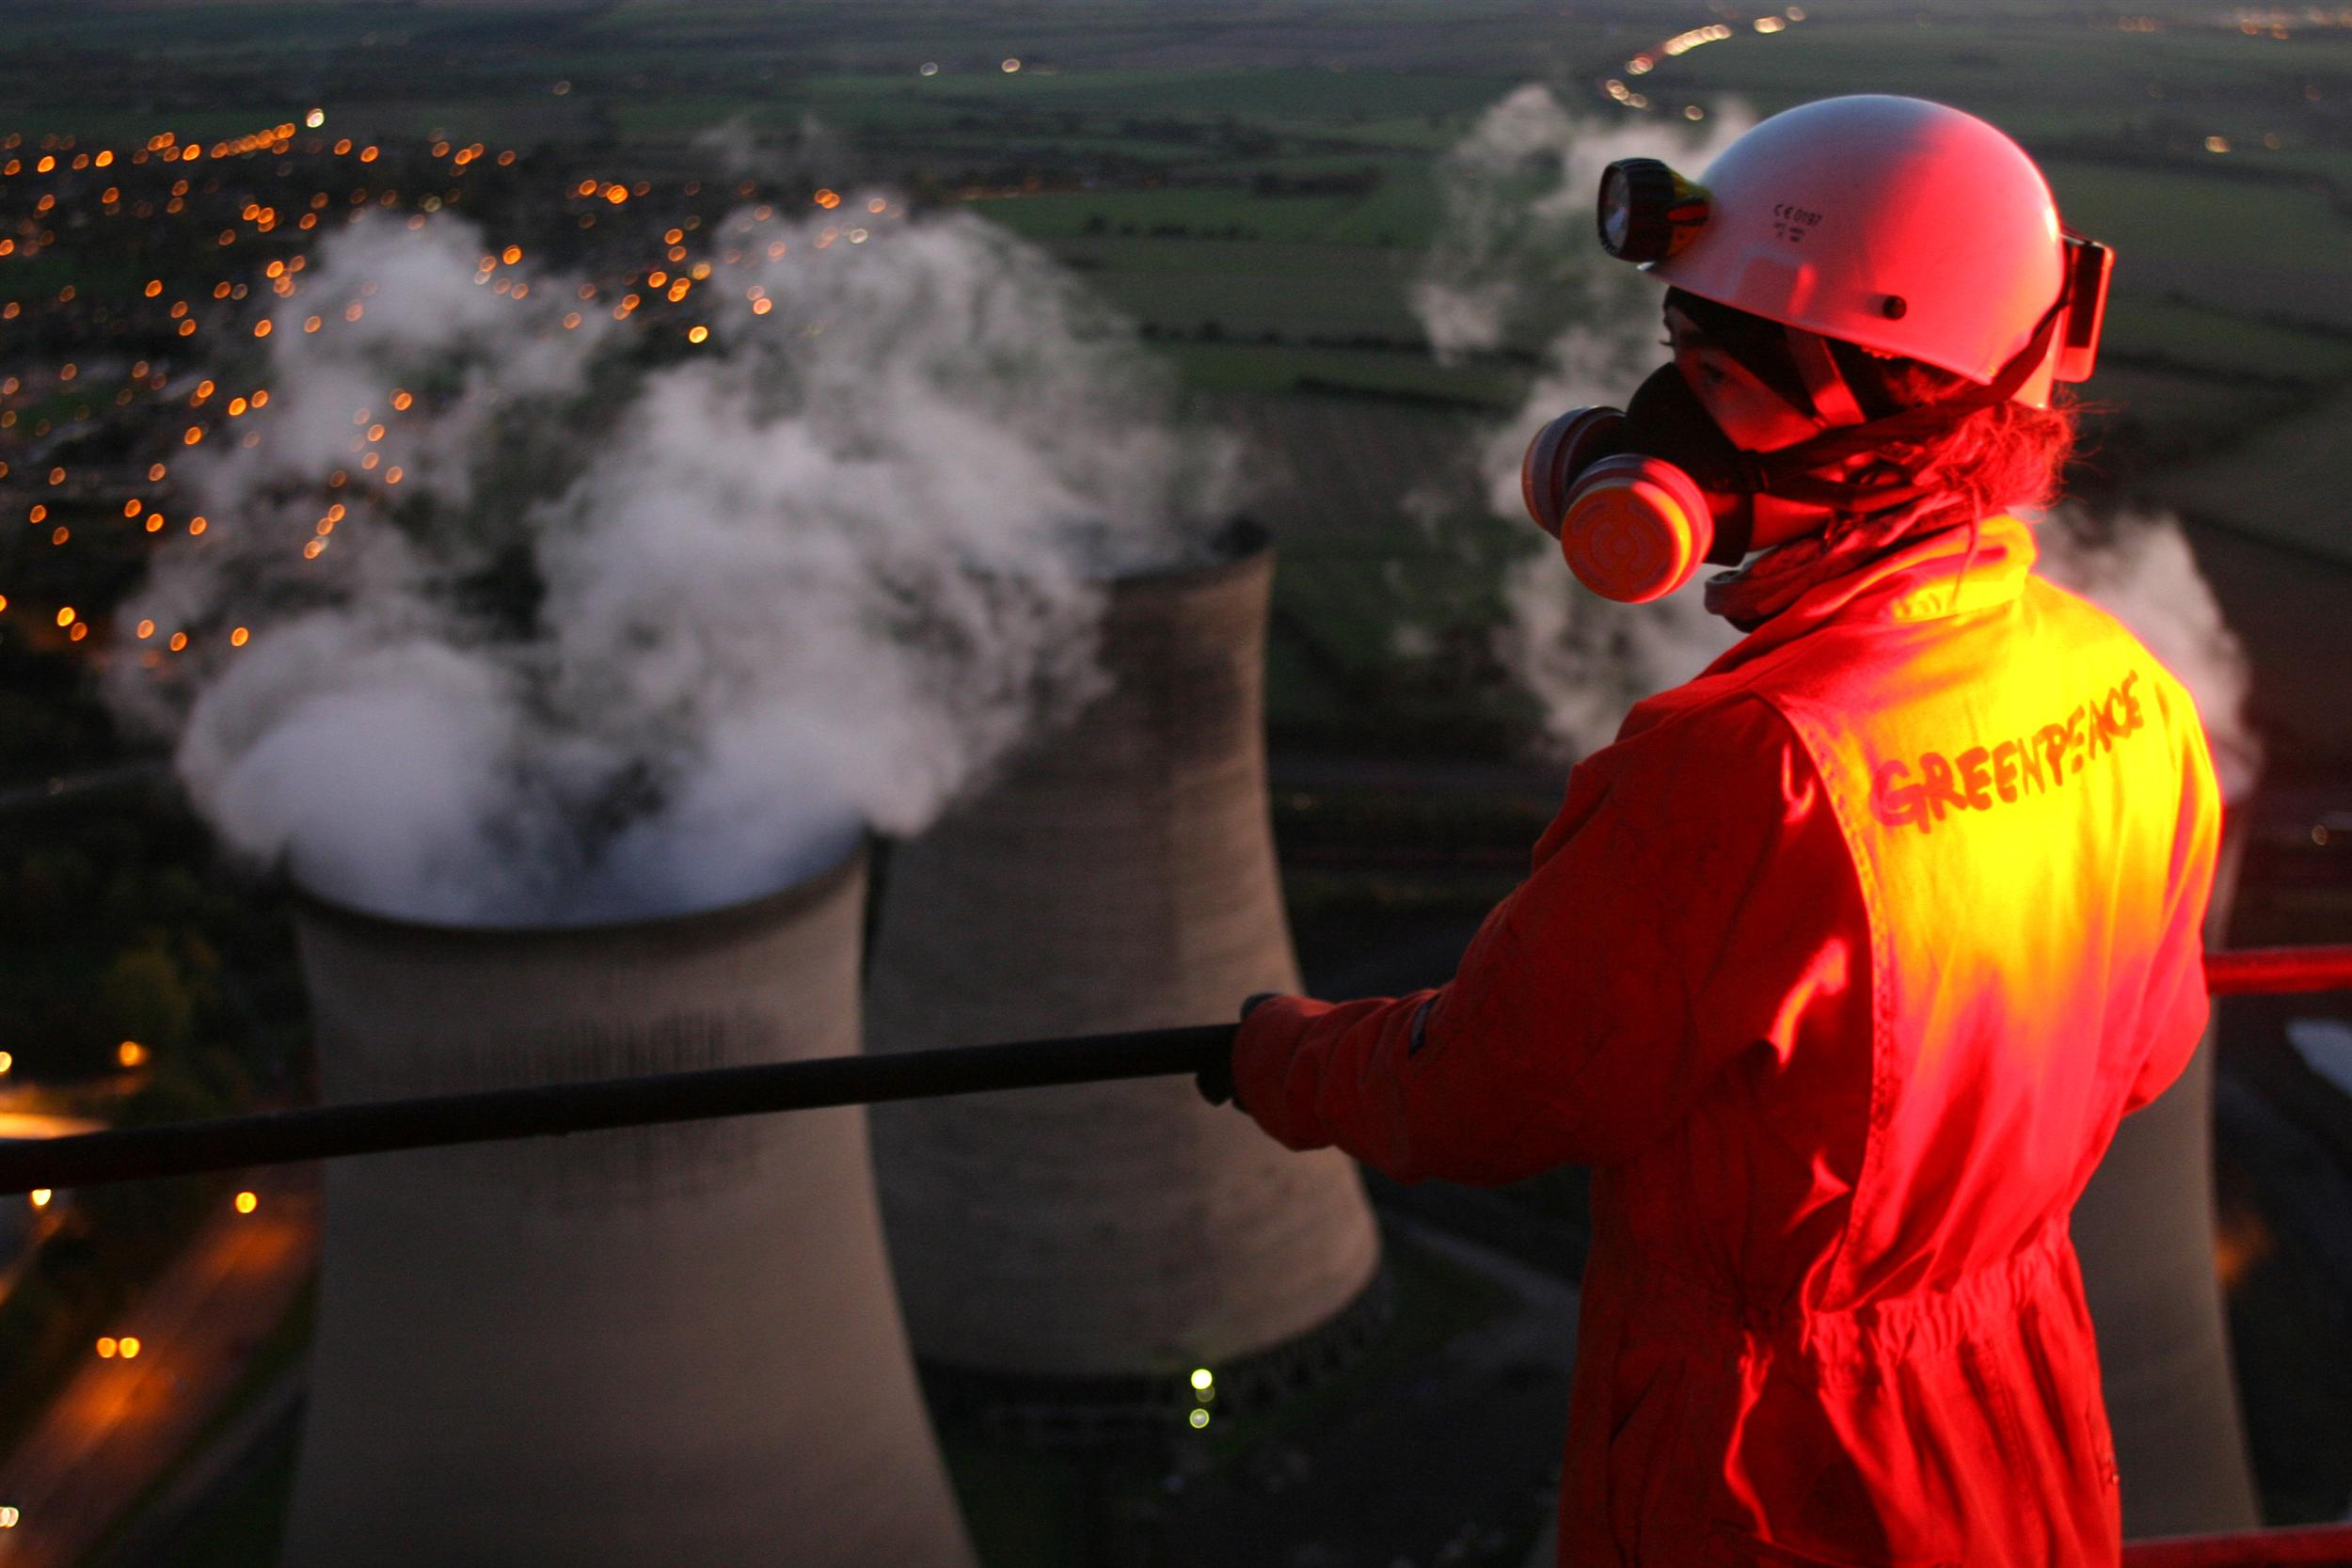 A Greenpeace activist overlooks cooling towers at Didcot power station during a 2 day occupation